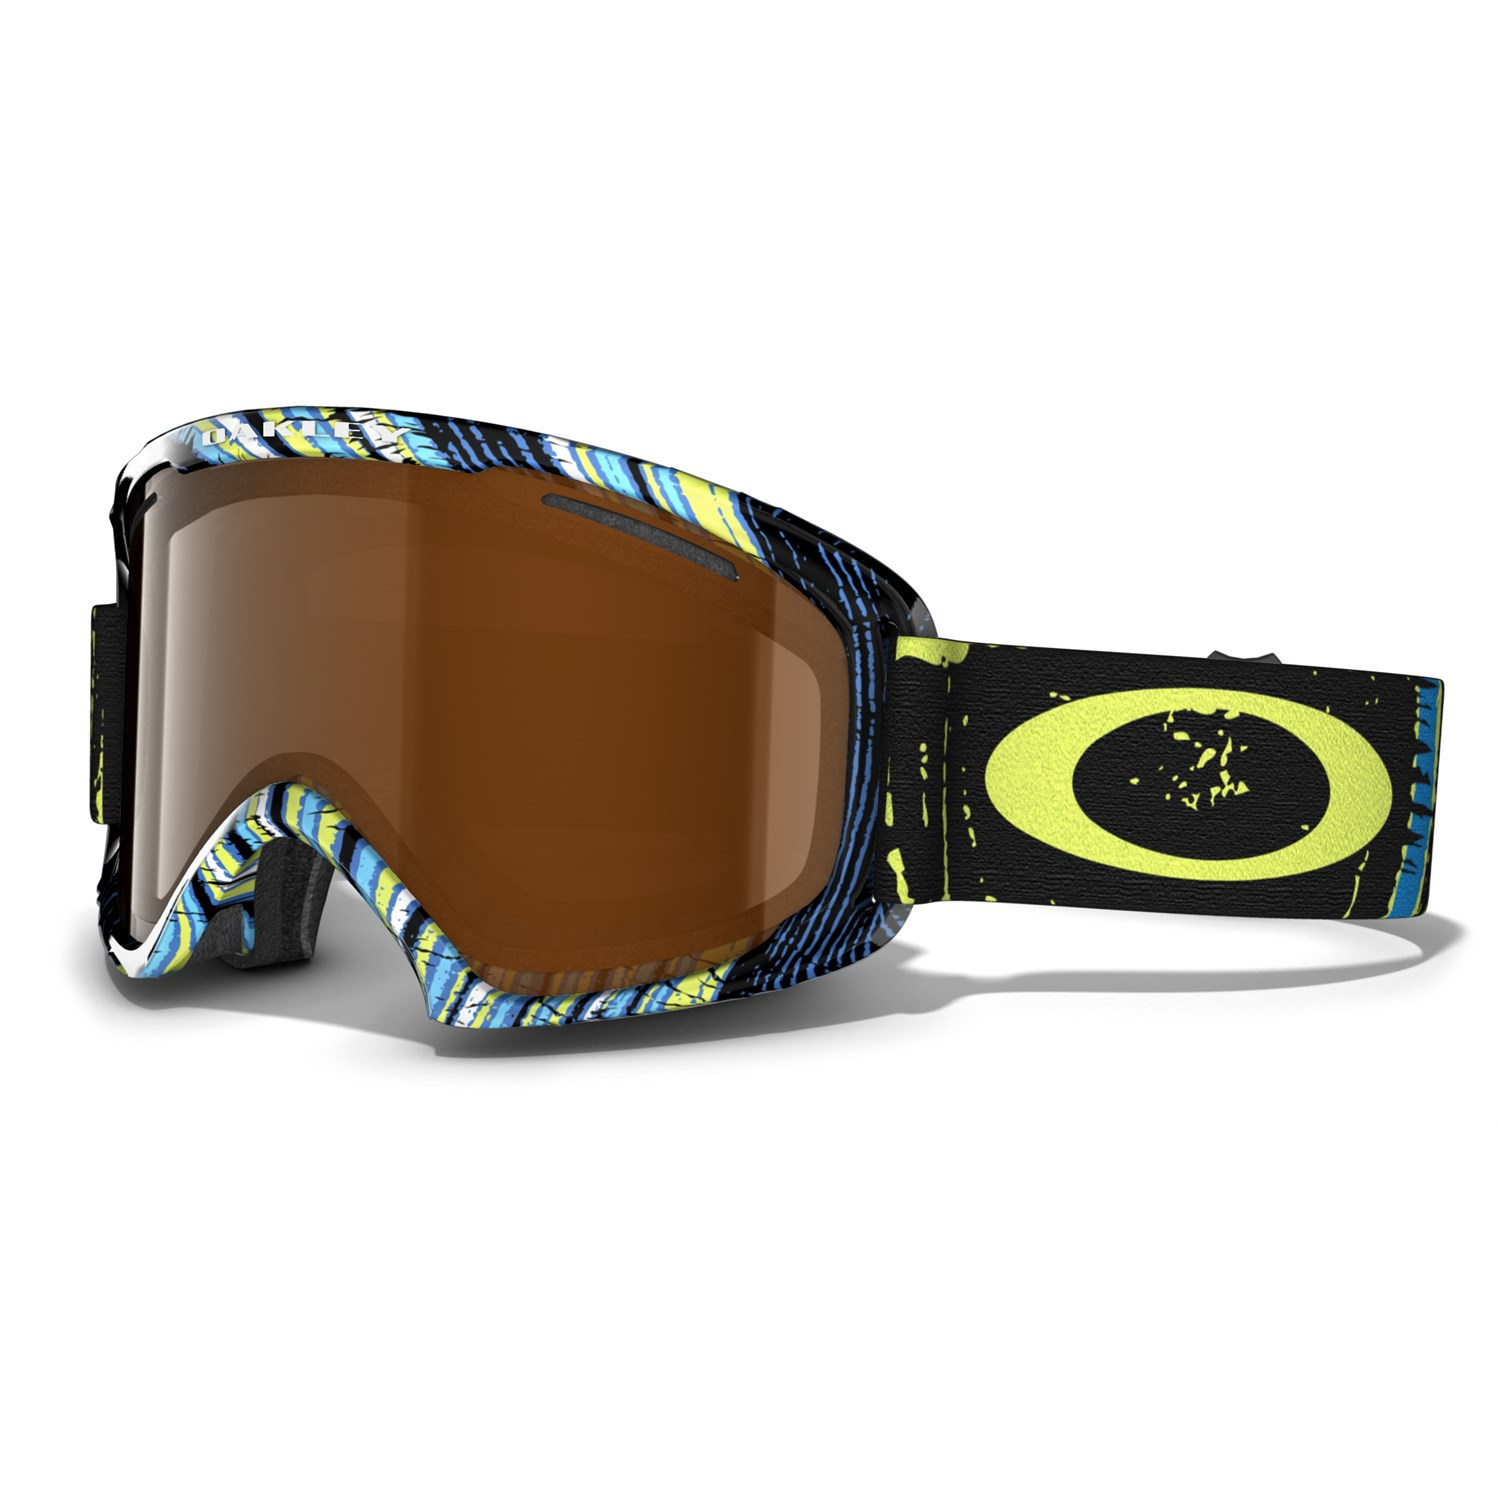 5d3869fe61 Oakley Ski Goggles Clearance « One More Soul